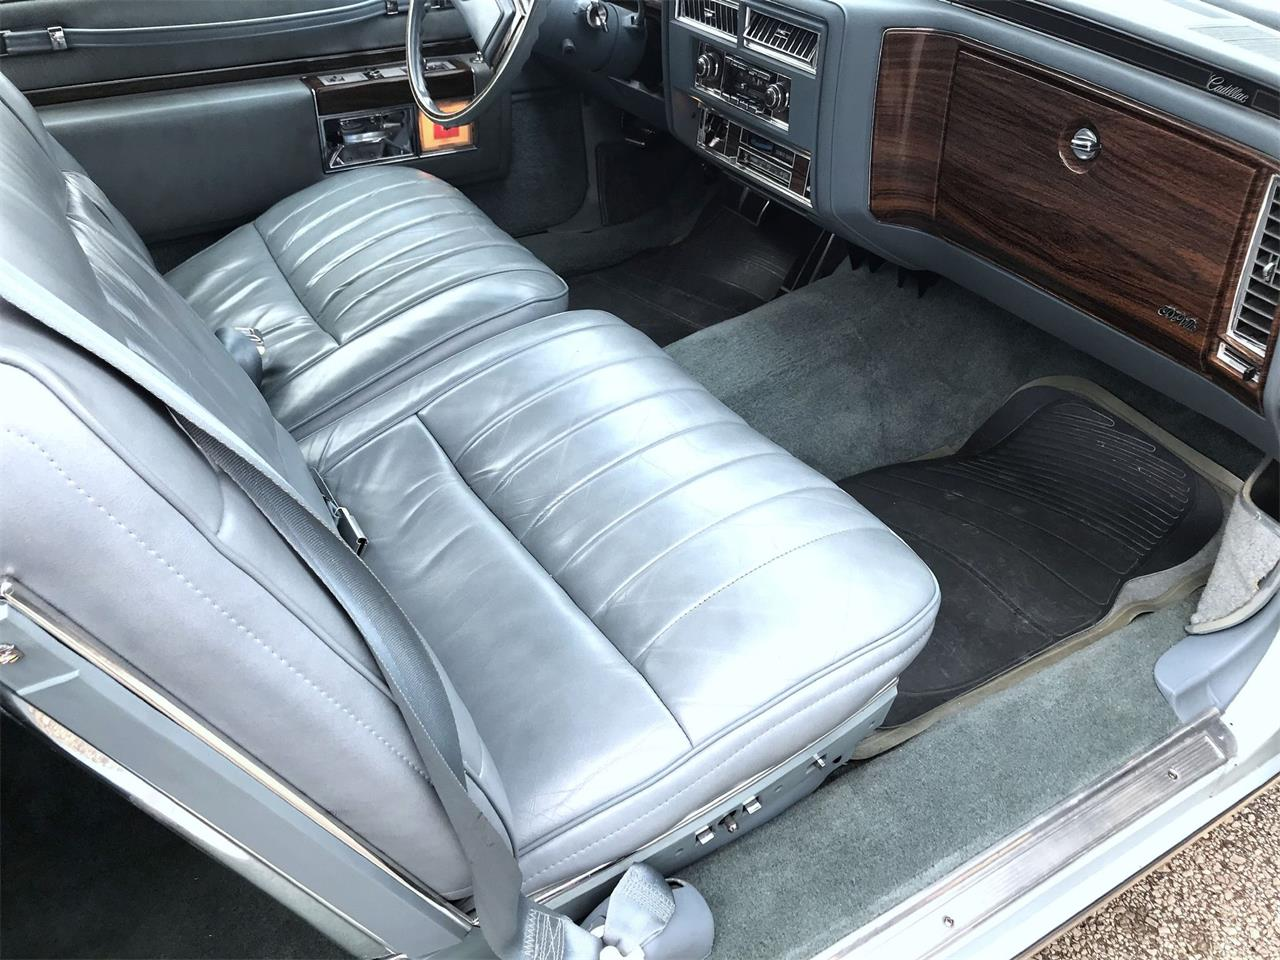 1978 Cadillac Coupe DeVille (CC-1136132) for sale in Stratford, New Jersey